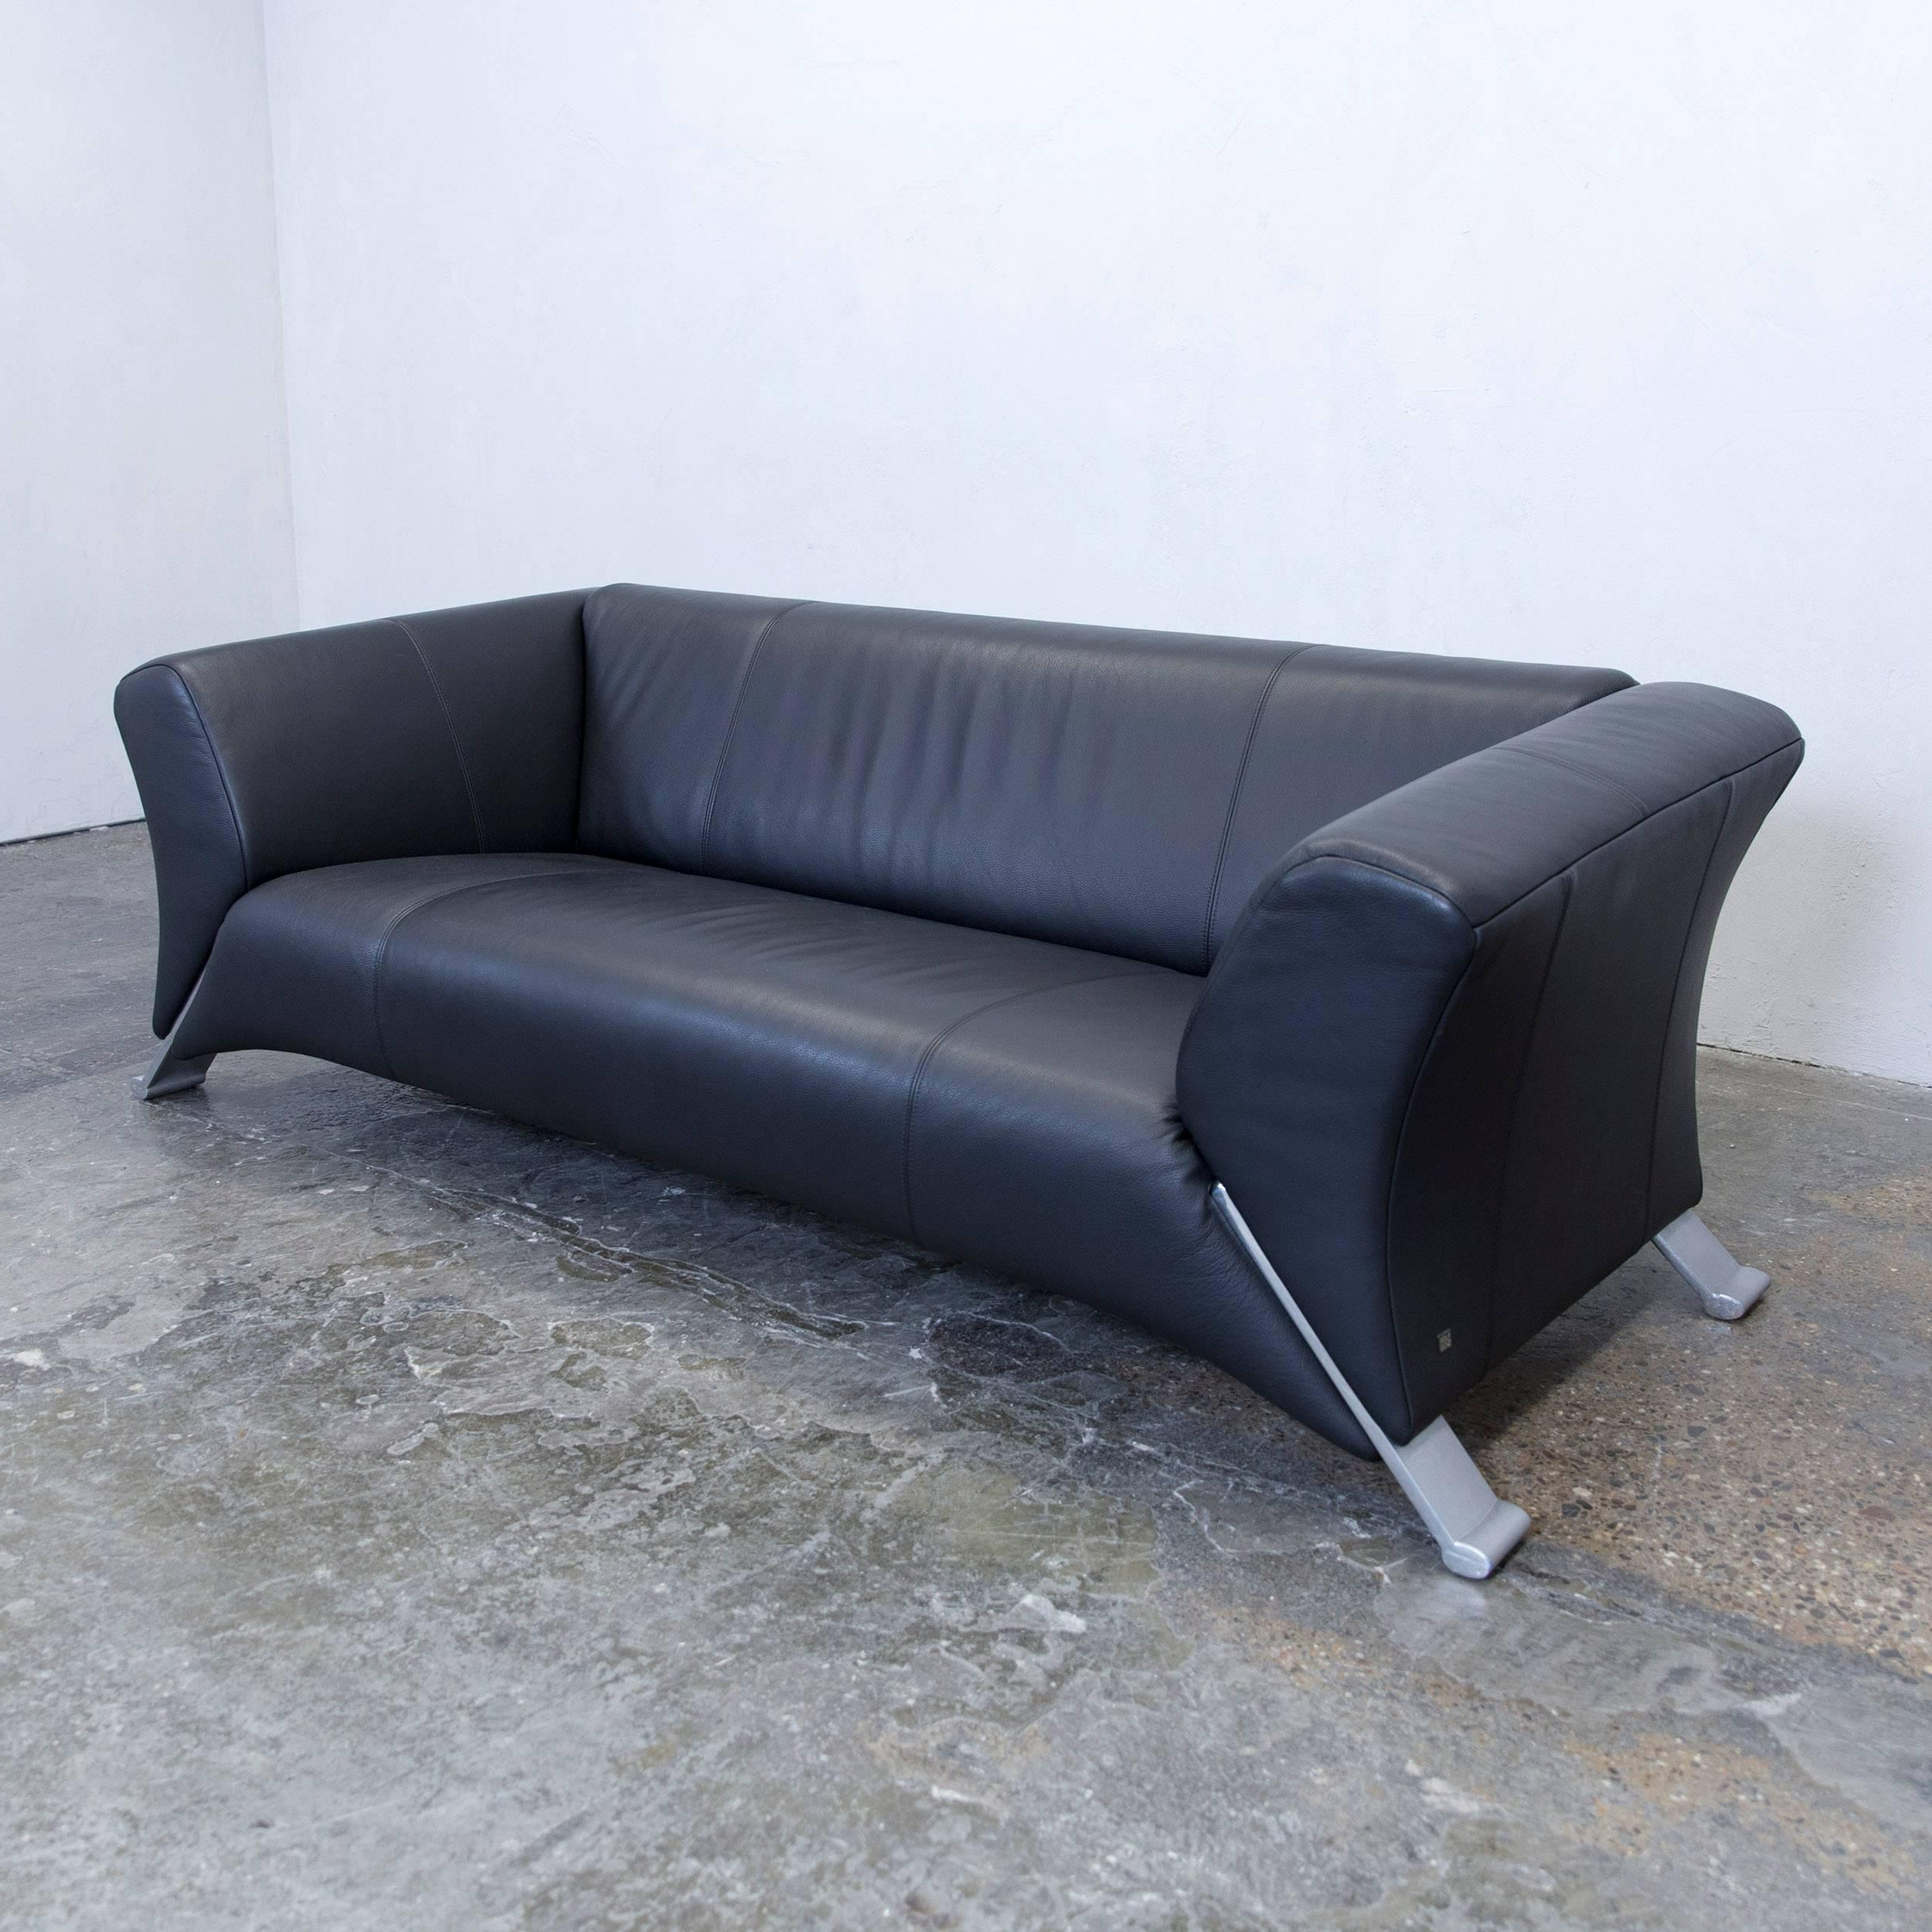 Kautsch Sofa Sofa Kautsch Great Good Ecksofa Vida Xcm Grau Schwarz Couch Sofa